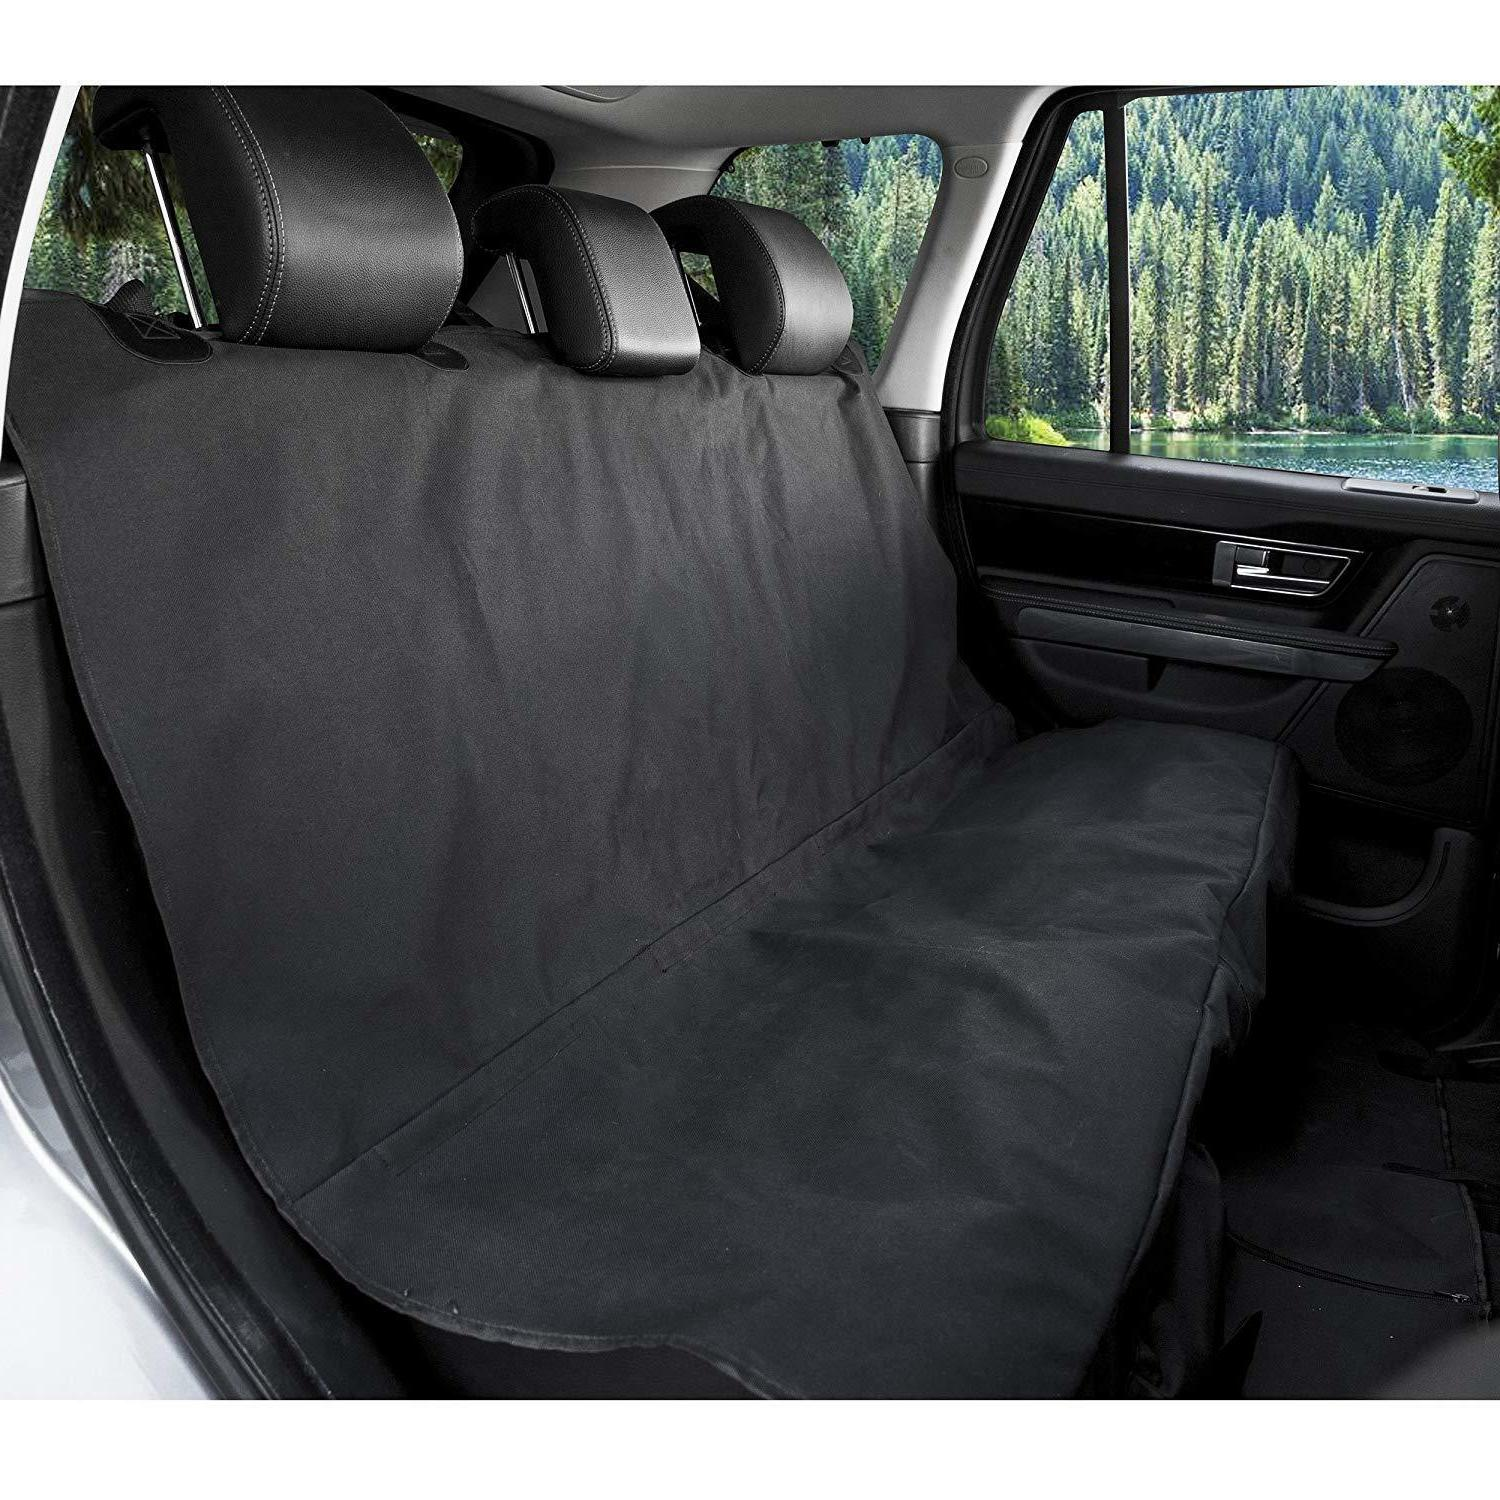 BarksBar Original Pet Seat Cover Pet Cover for Cars